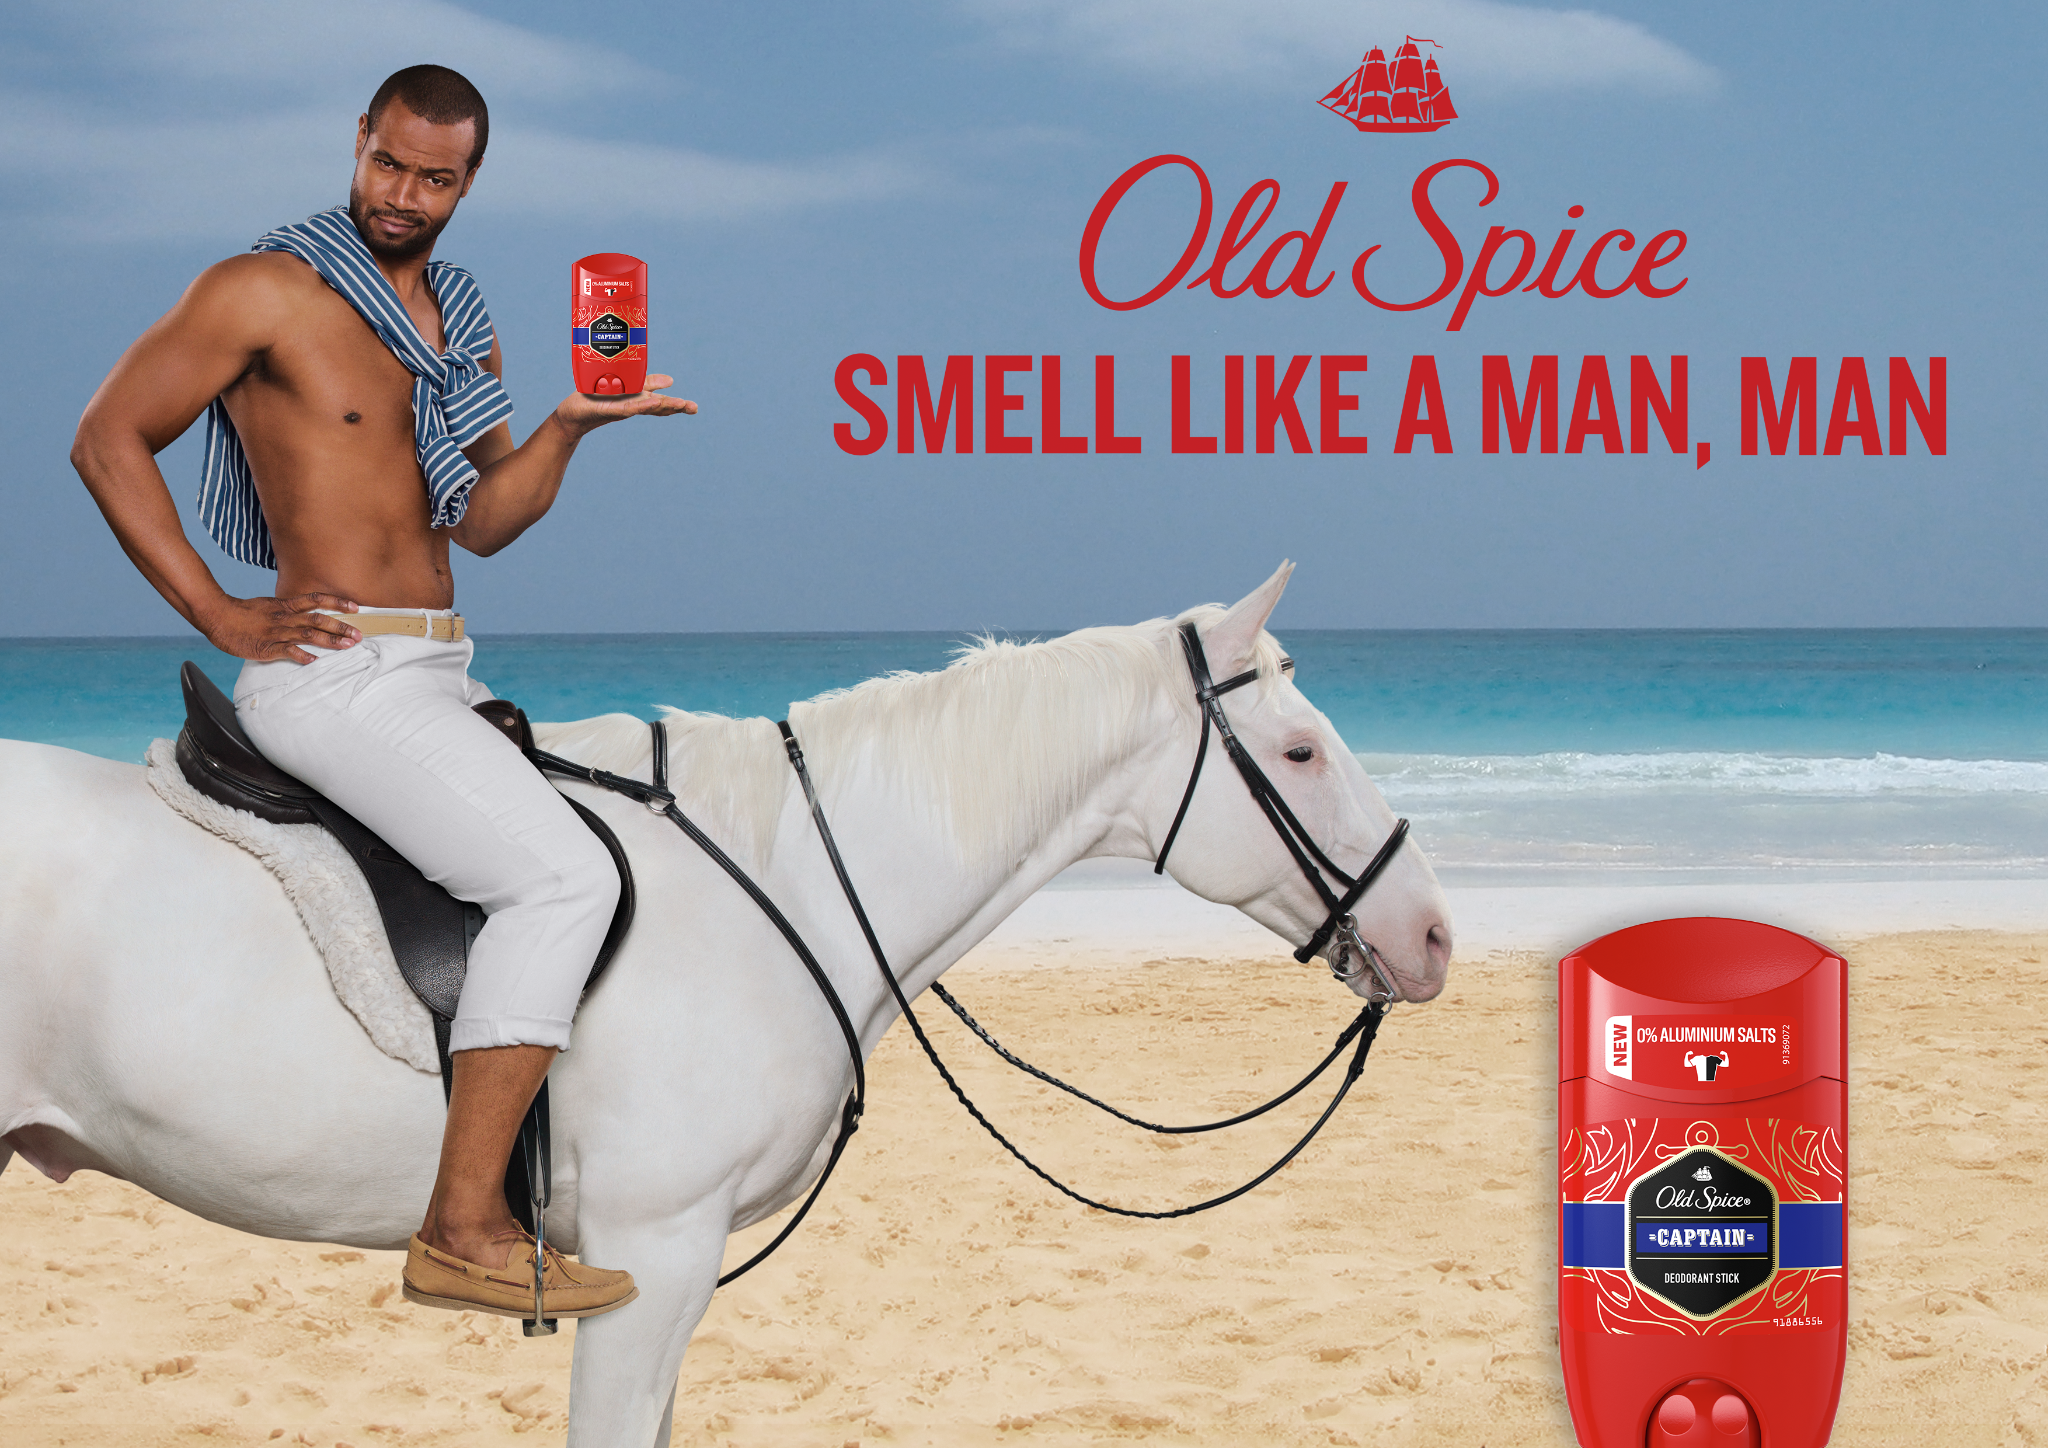 Credit: Old Spice